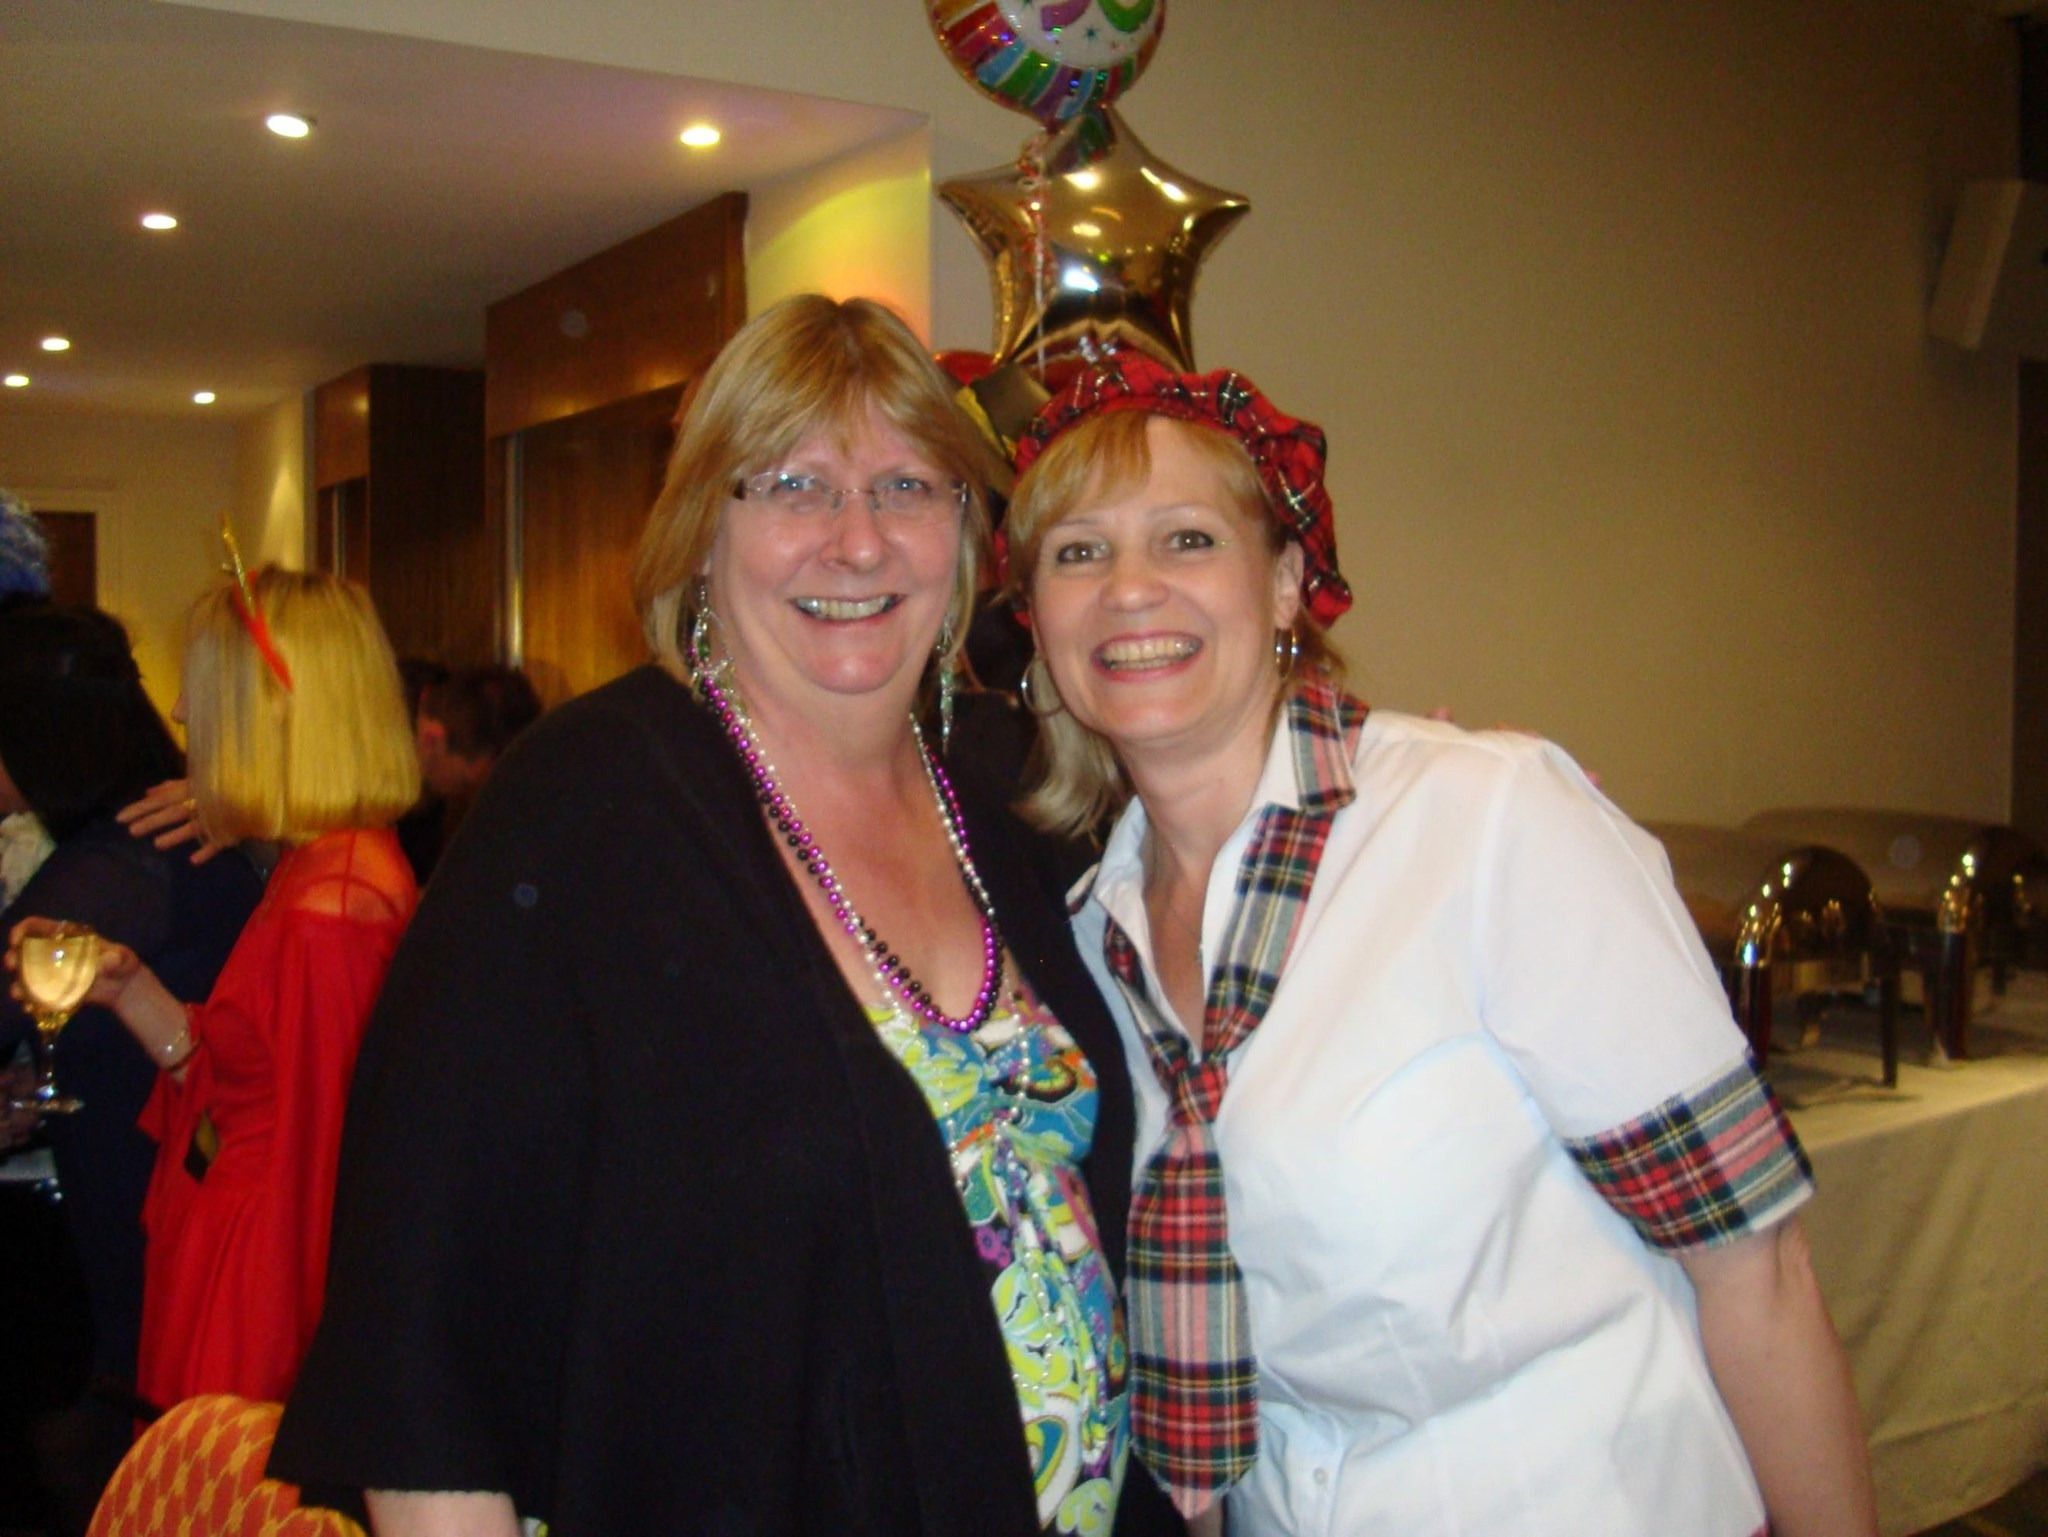 Carrie (hippy) and Karen (Bay city roller fan) - Helen K's 50th